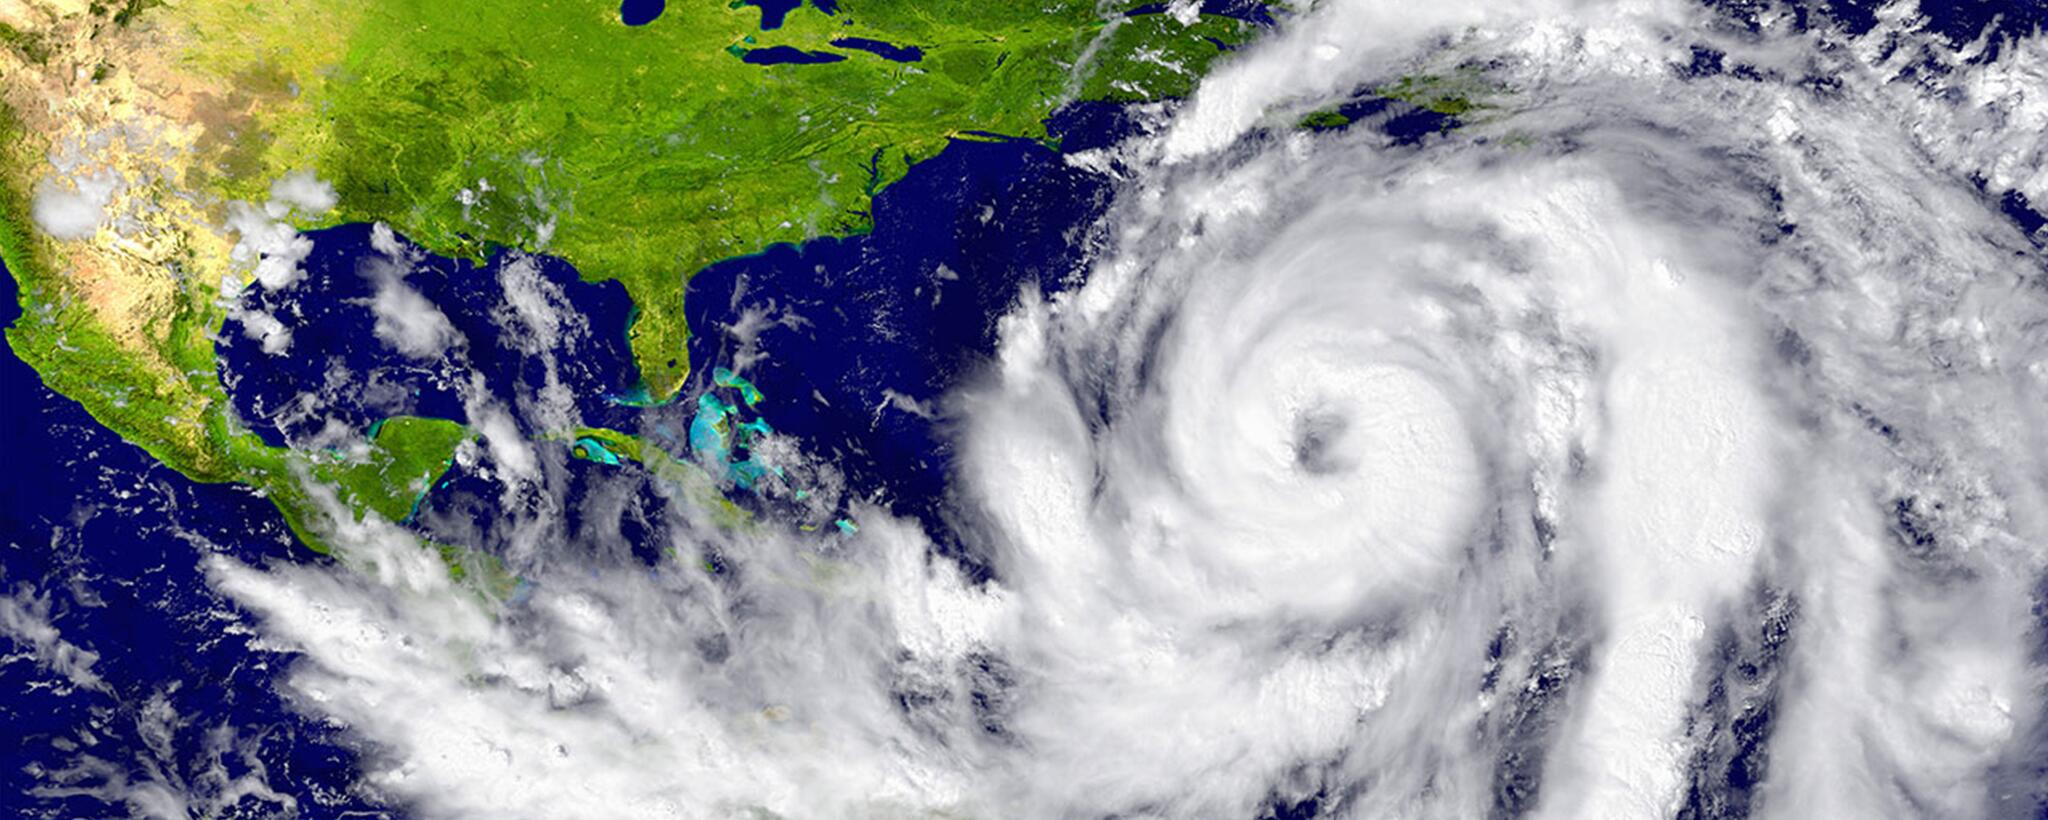 a satelite image of a hurricane off the coast of the United State